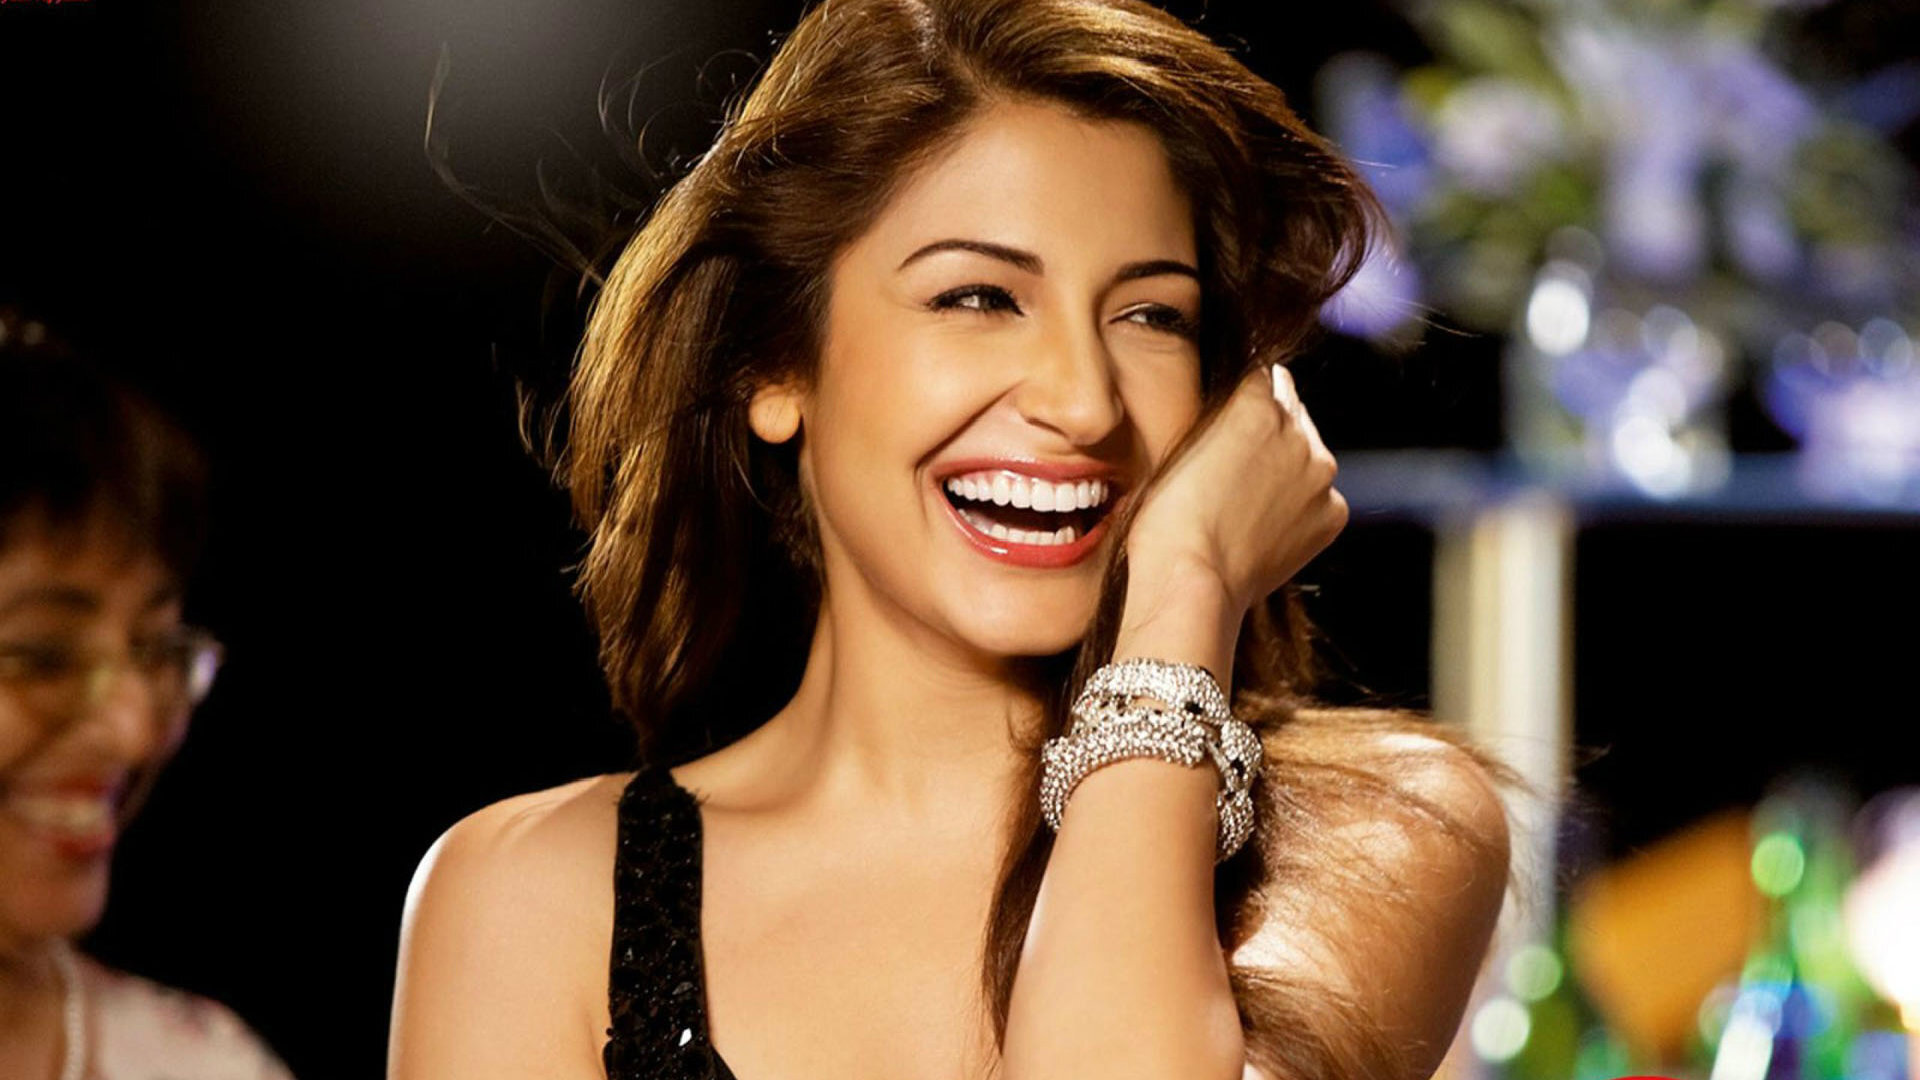 Anushka Sharma Hot Wallpaper  image collections of